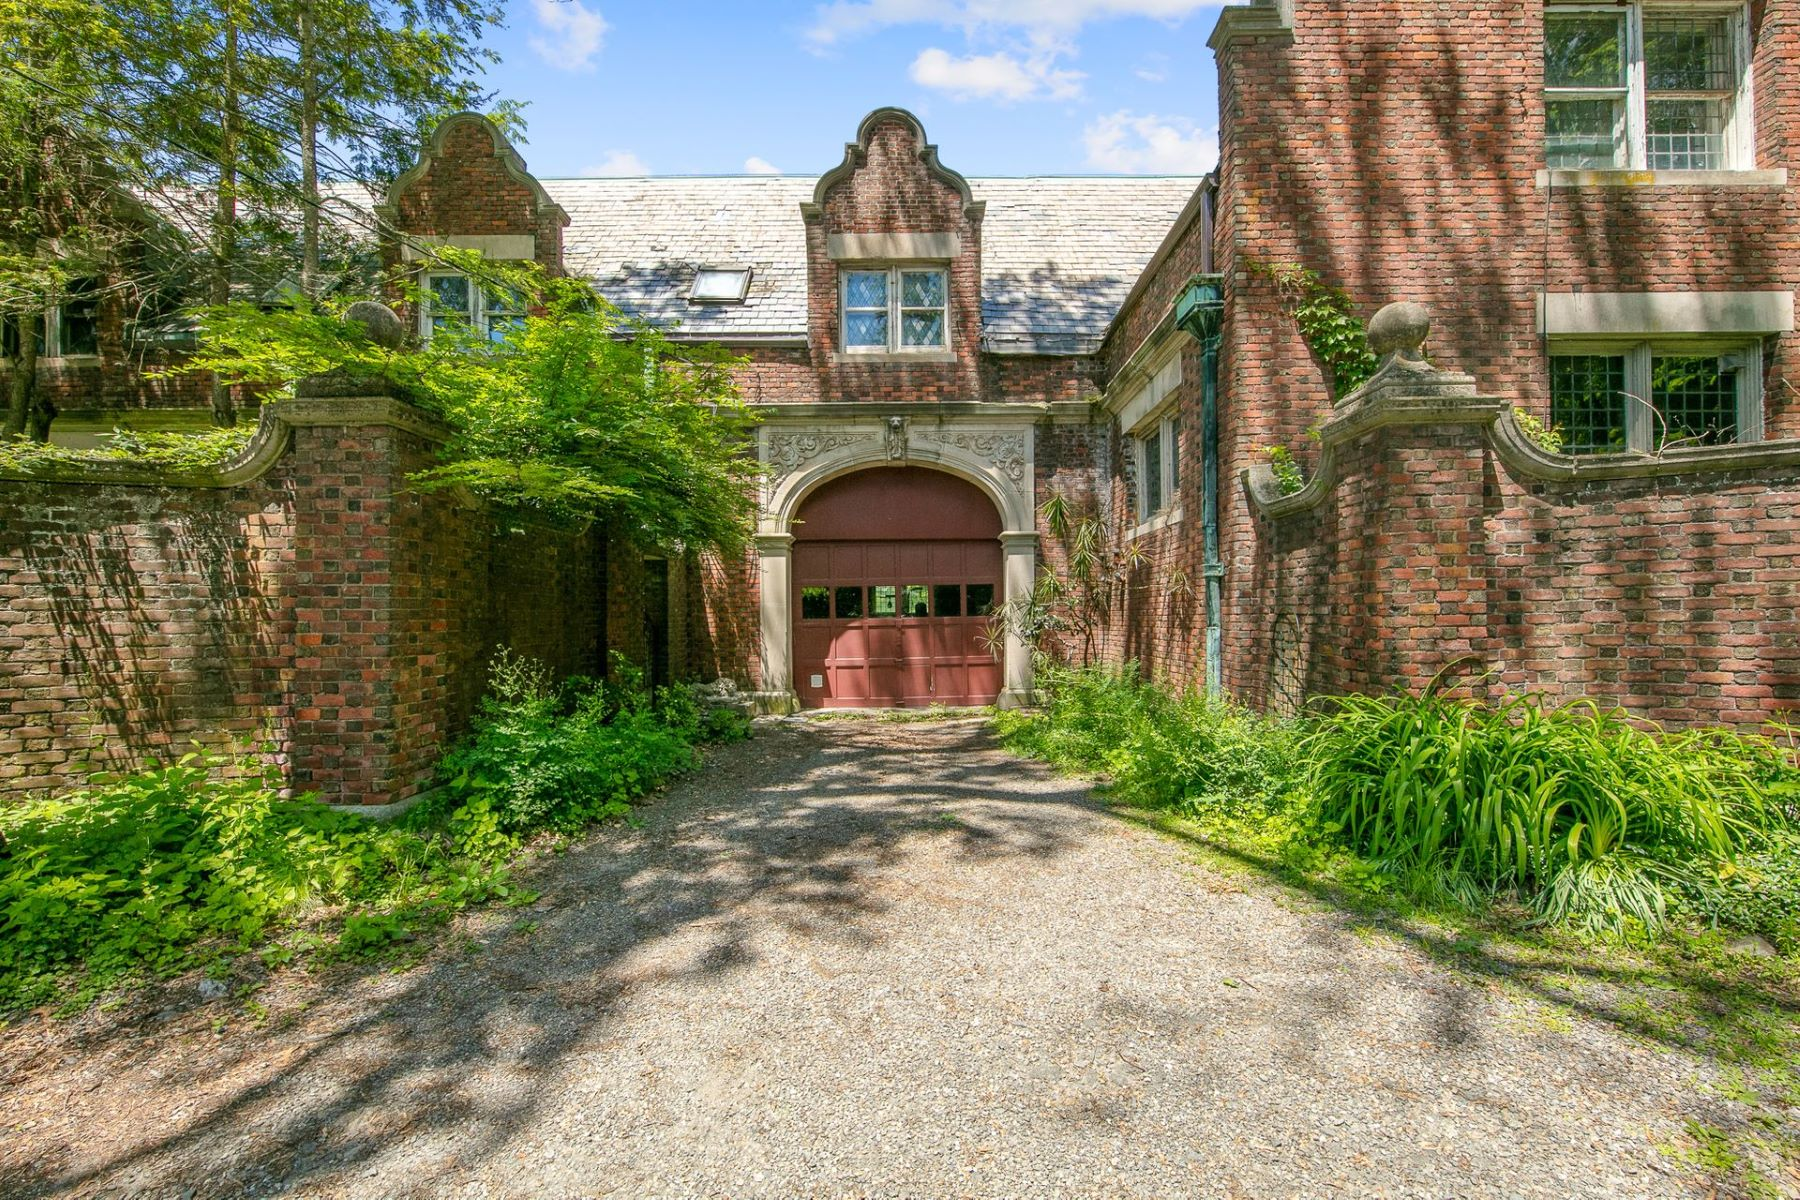 Property for Sale at Historic Henry V Poor Carriage House 72 Circuit Road Tuxedo Park, New York 10987 United States